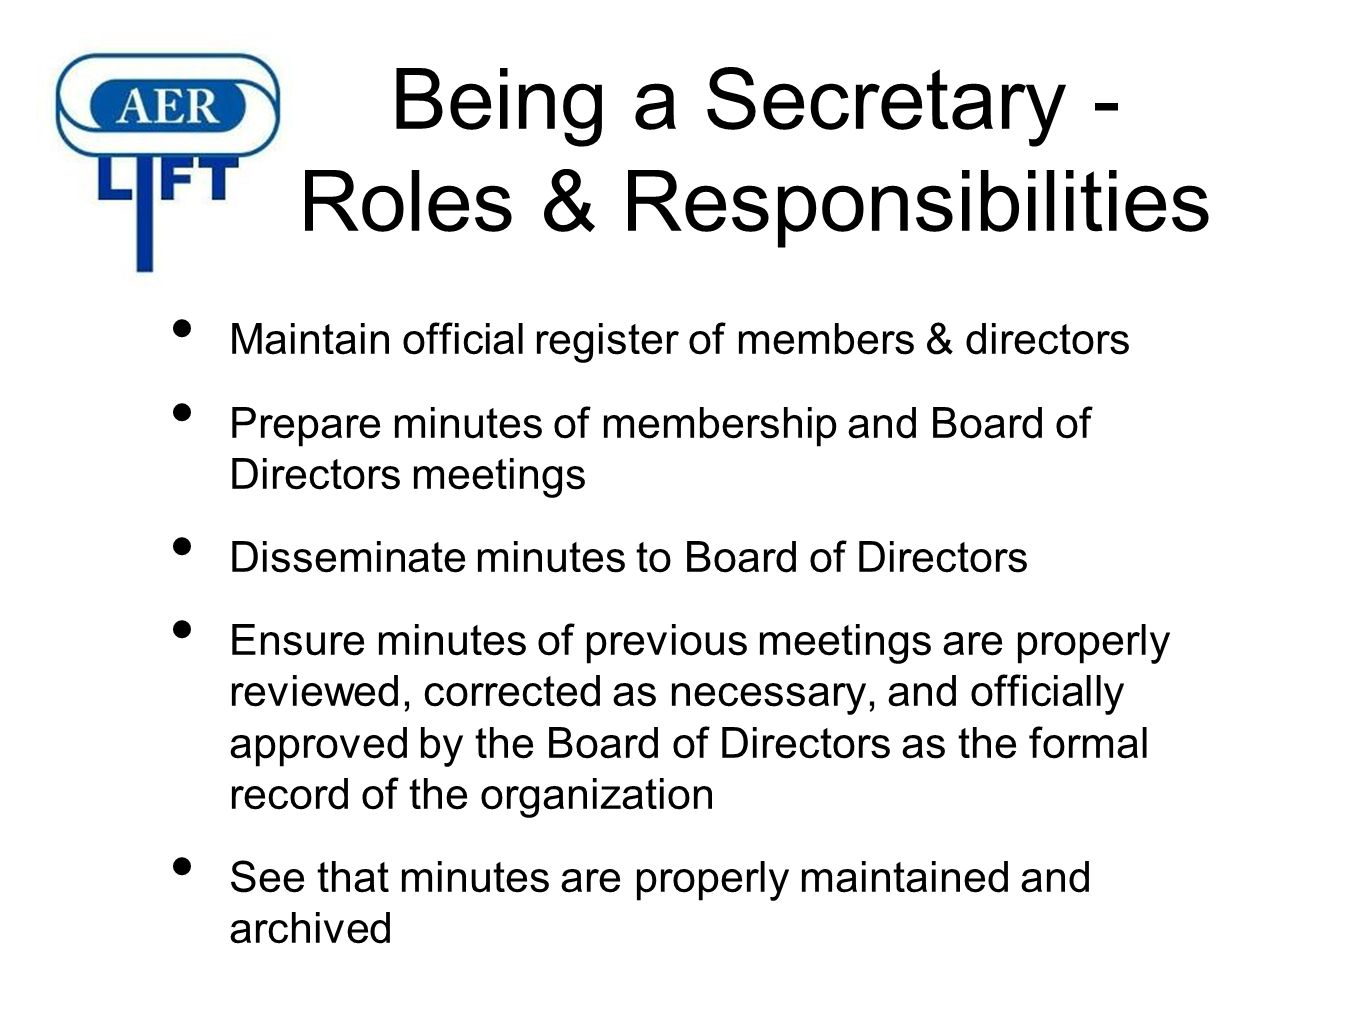 the roles and responsibilities of secretary and treasurer